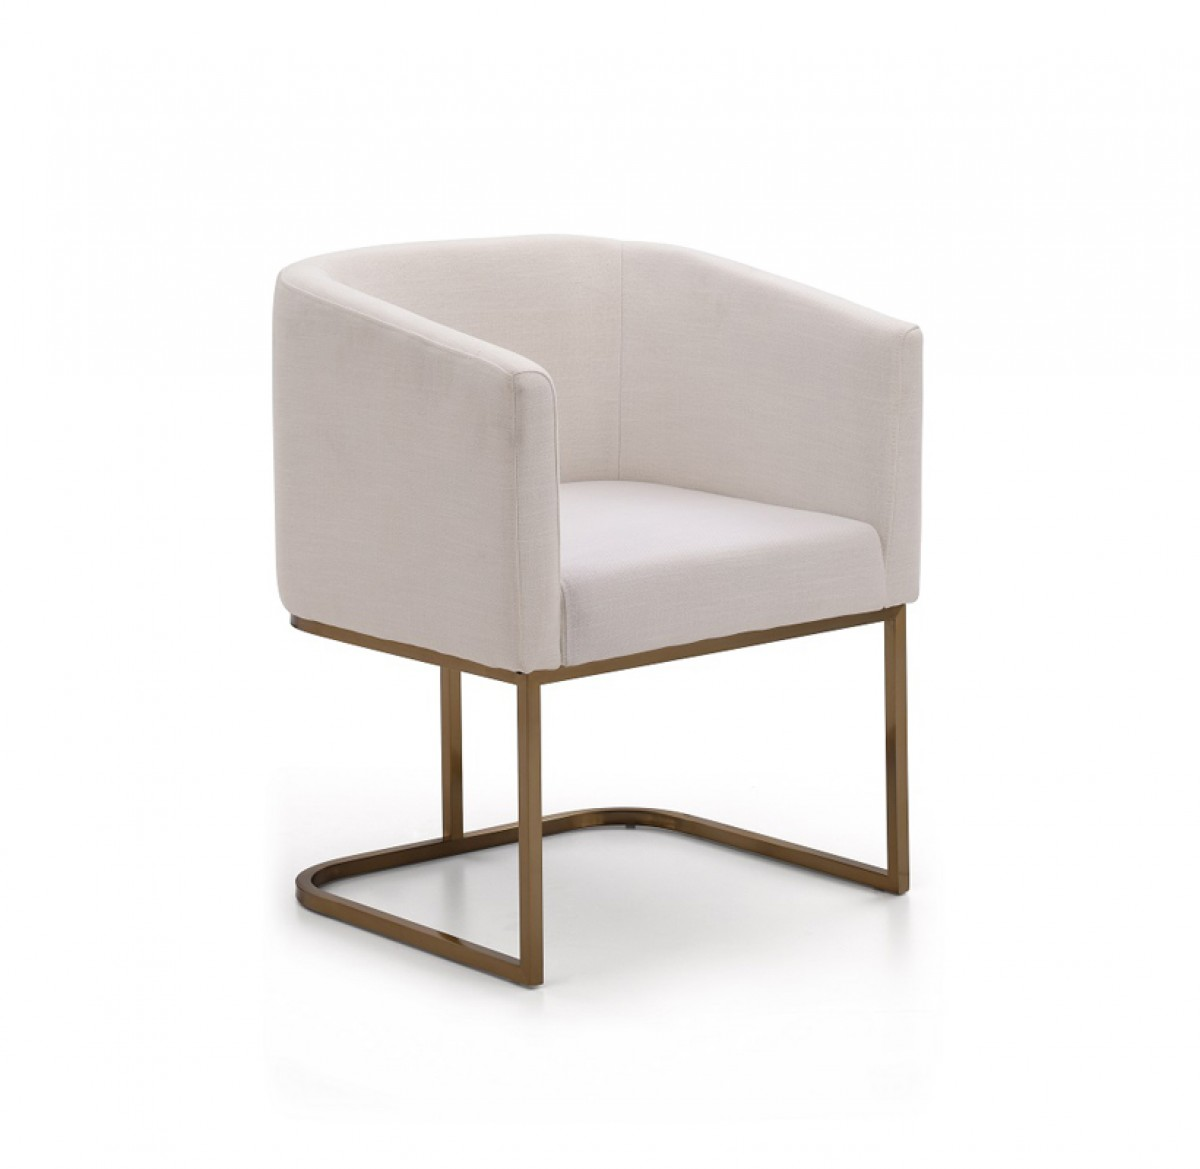 Modrest yukon modern white fabric and antique brass dining for Modern and contemporary furniture